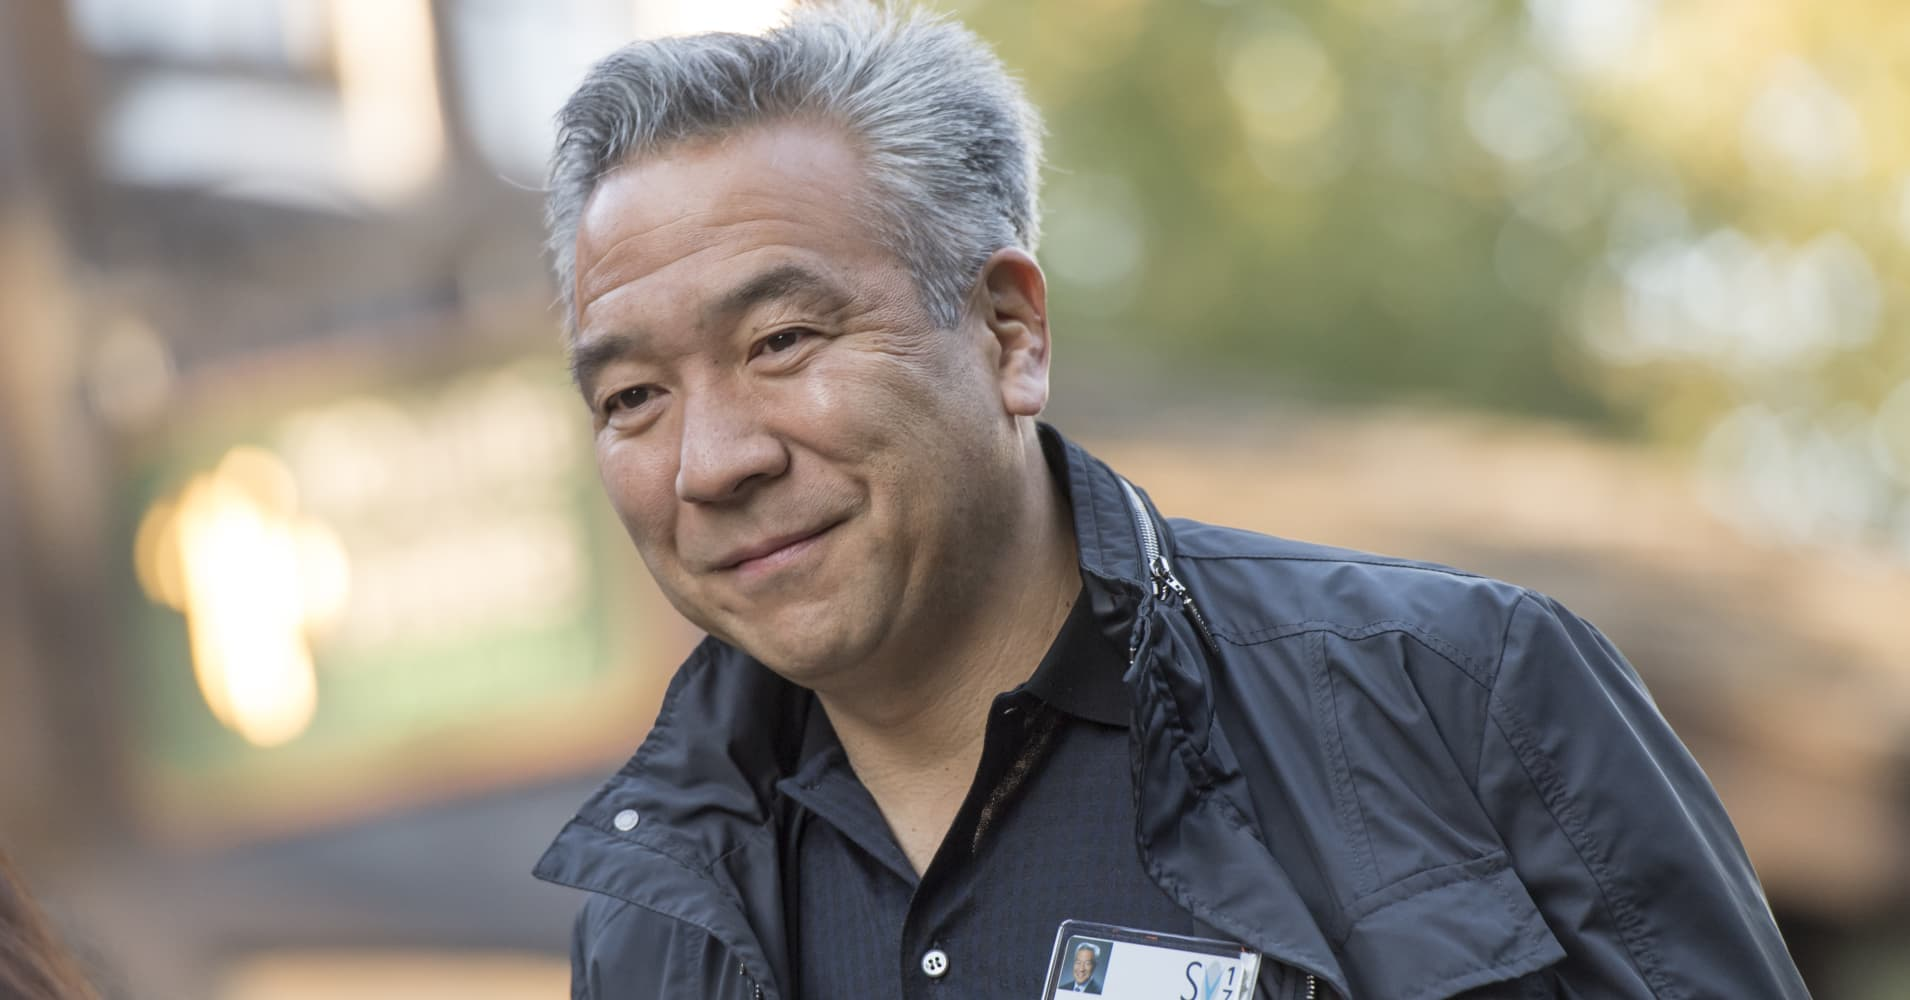 Warner Bros. CEO Kevin Tsujihara ousted after sexual misconduct allegations